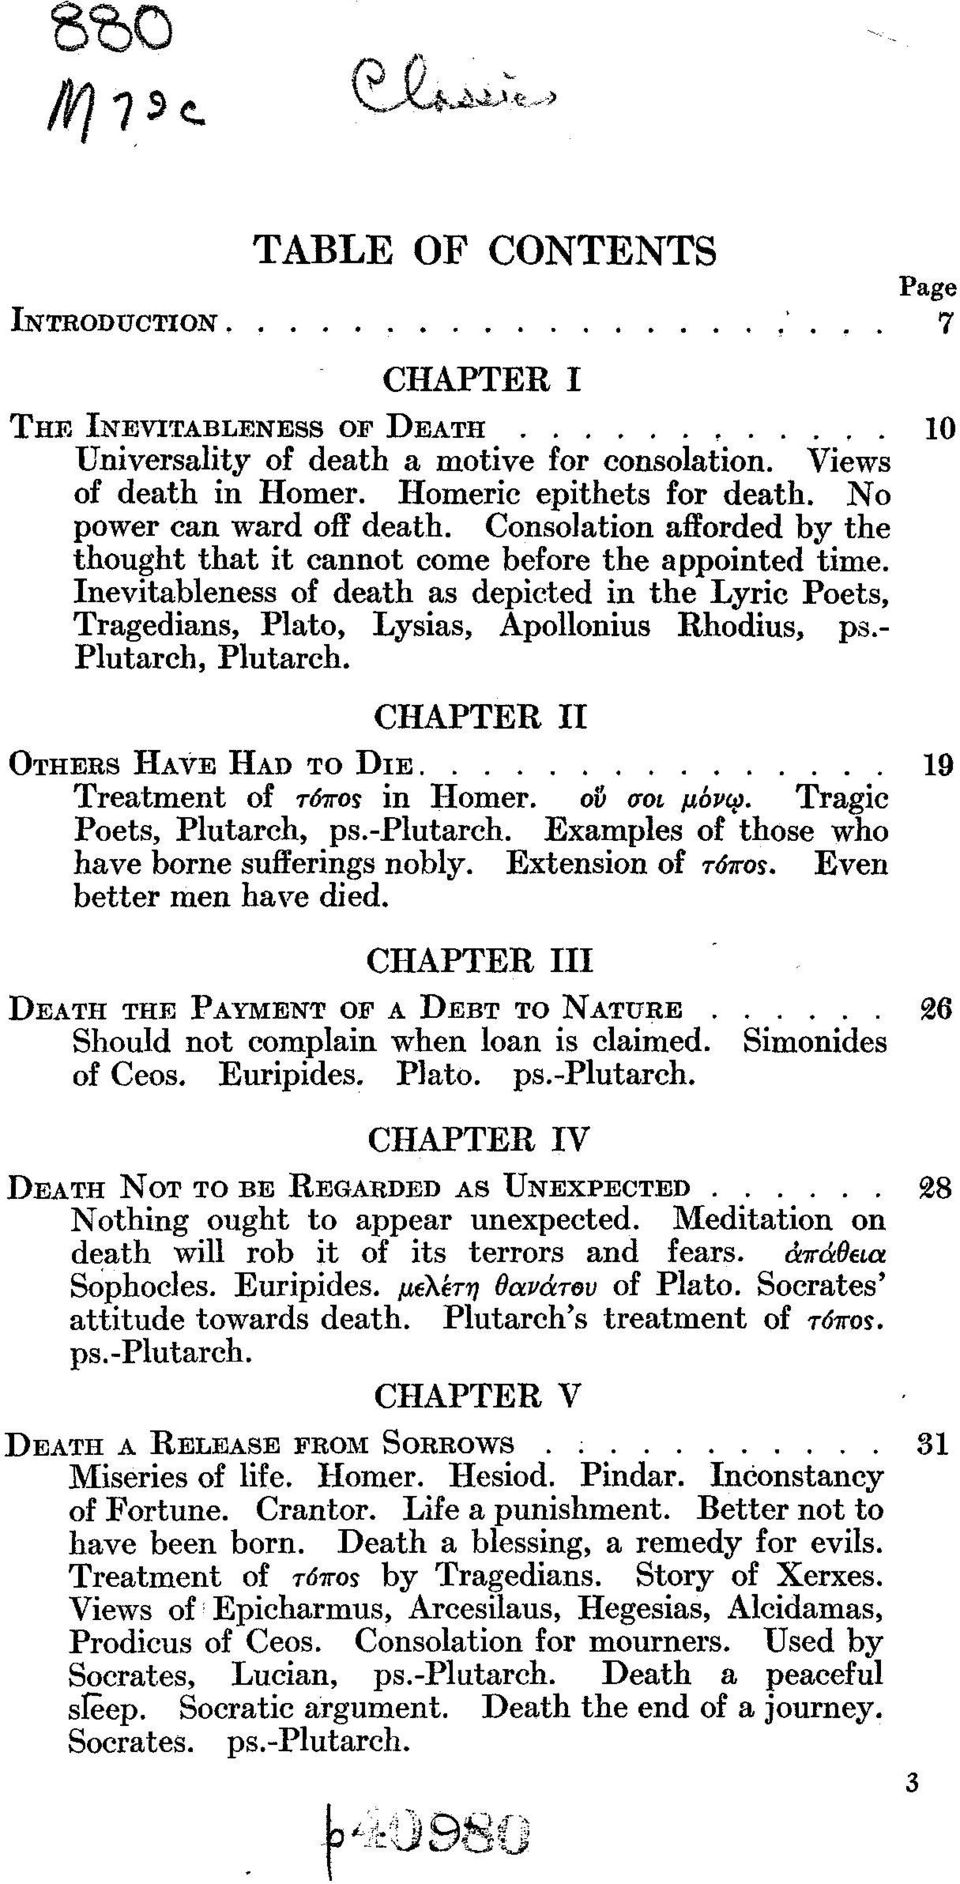 Inevitableness of death as depicted in the Lyric Poets, Tragedians, Plato, Lysias, Apollonius Rhodius, ps.- Plutarch, Plutarch.